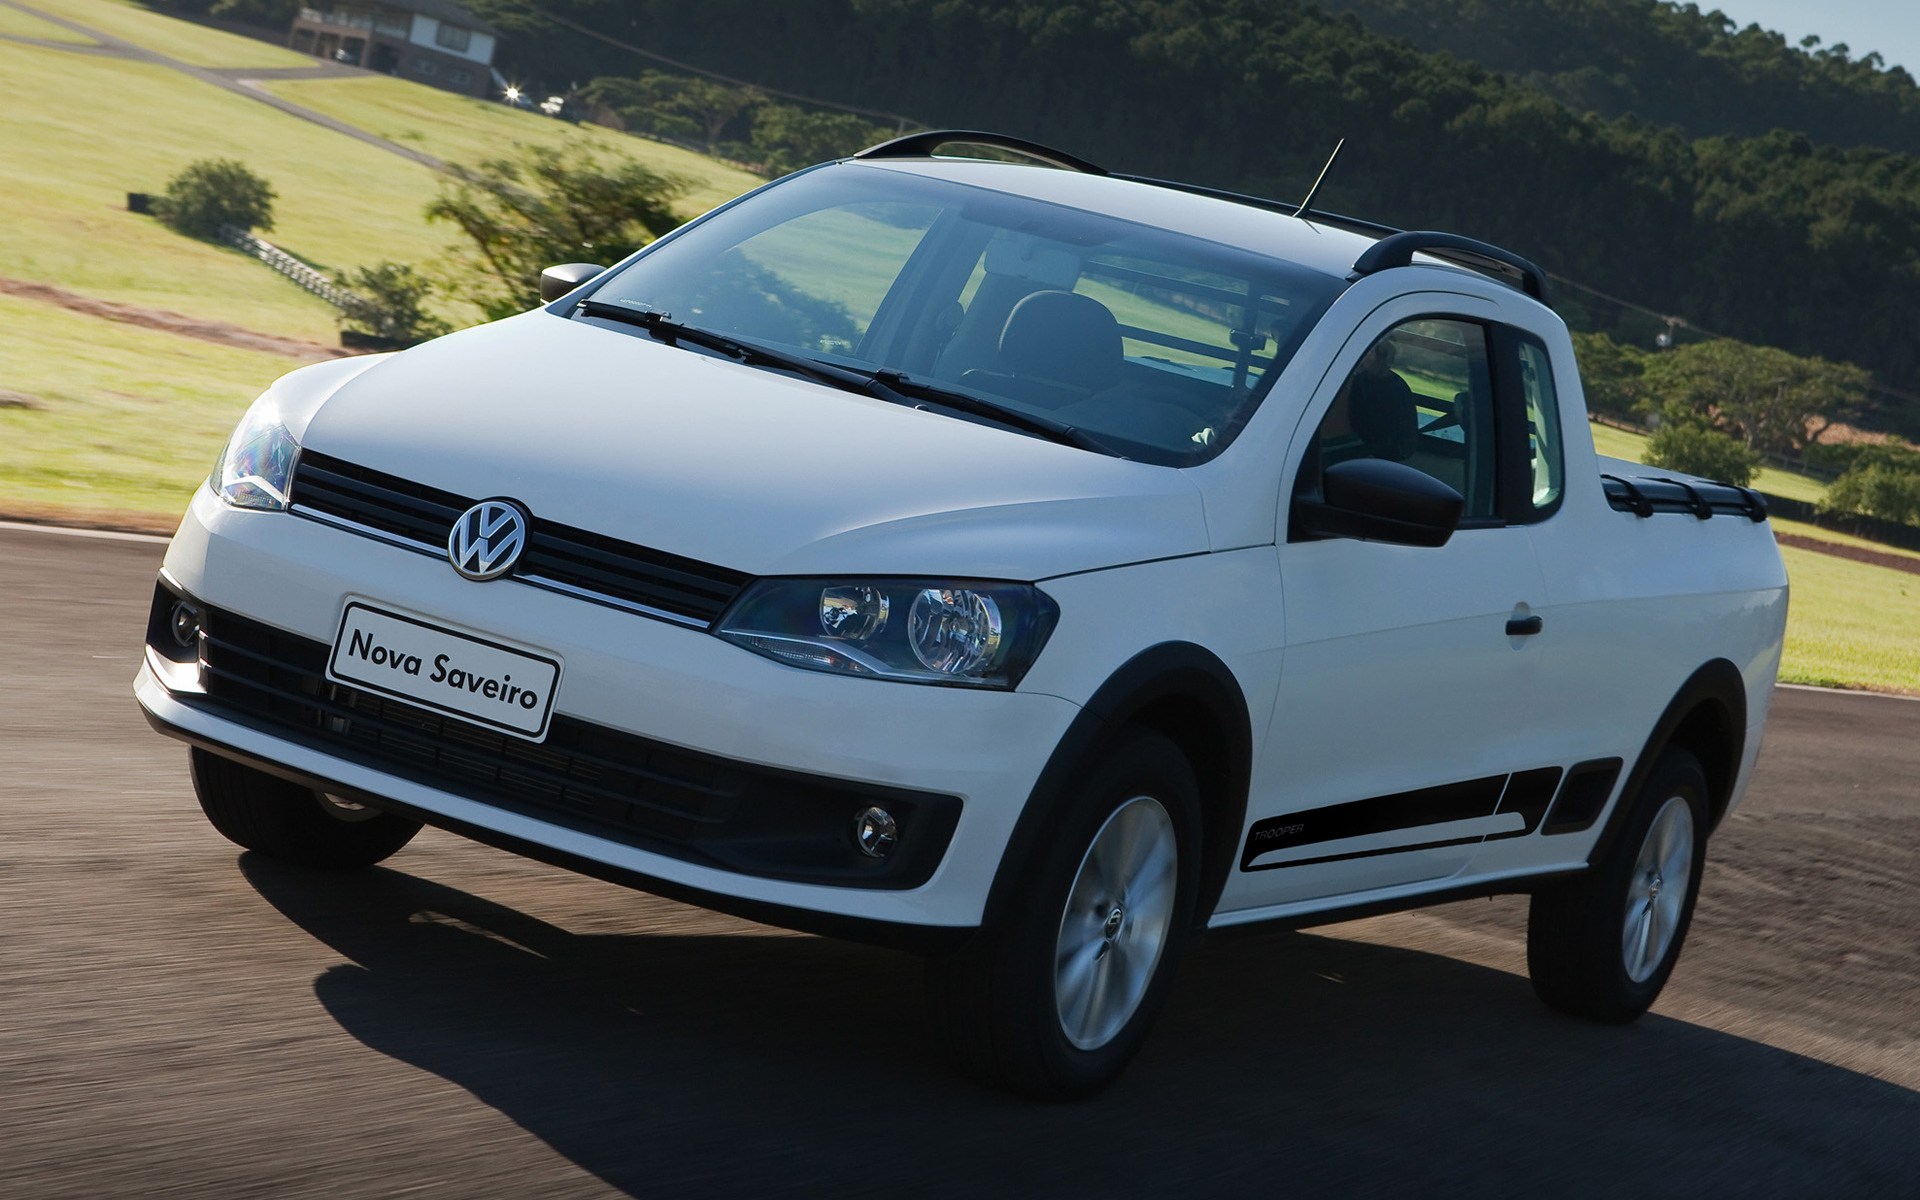 2013 Volkswagen Saveiro Trooper CE   Wallpapers and HD Images 1920x1200